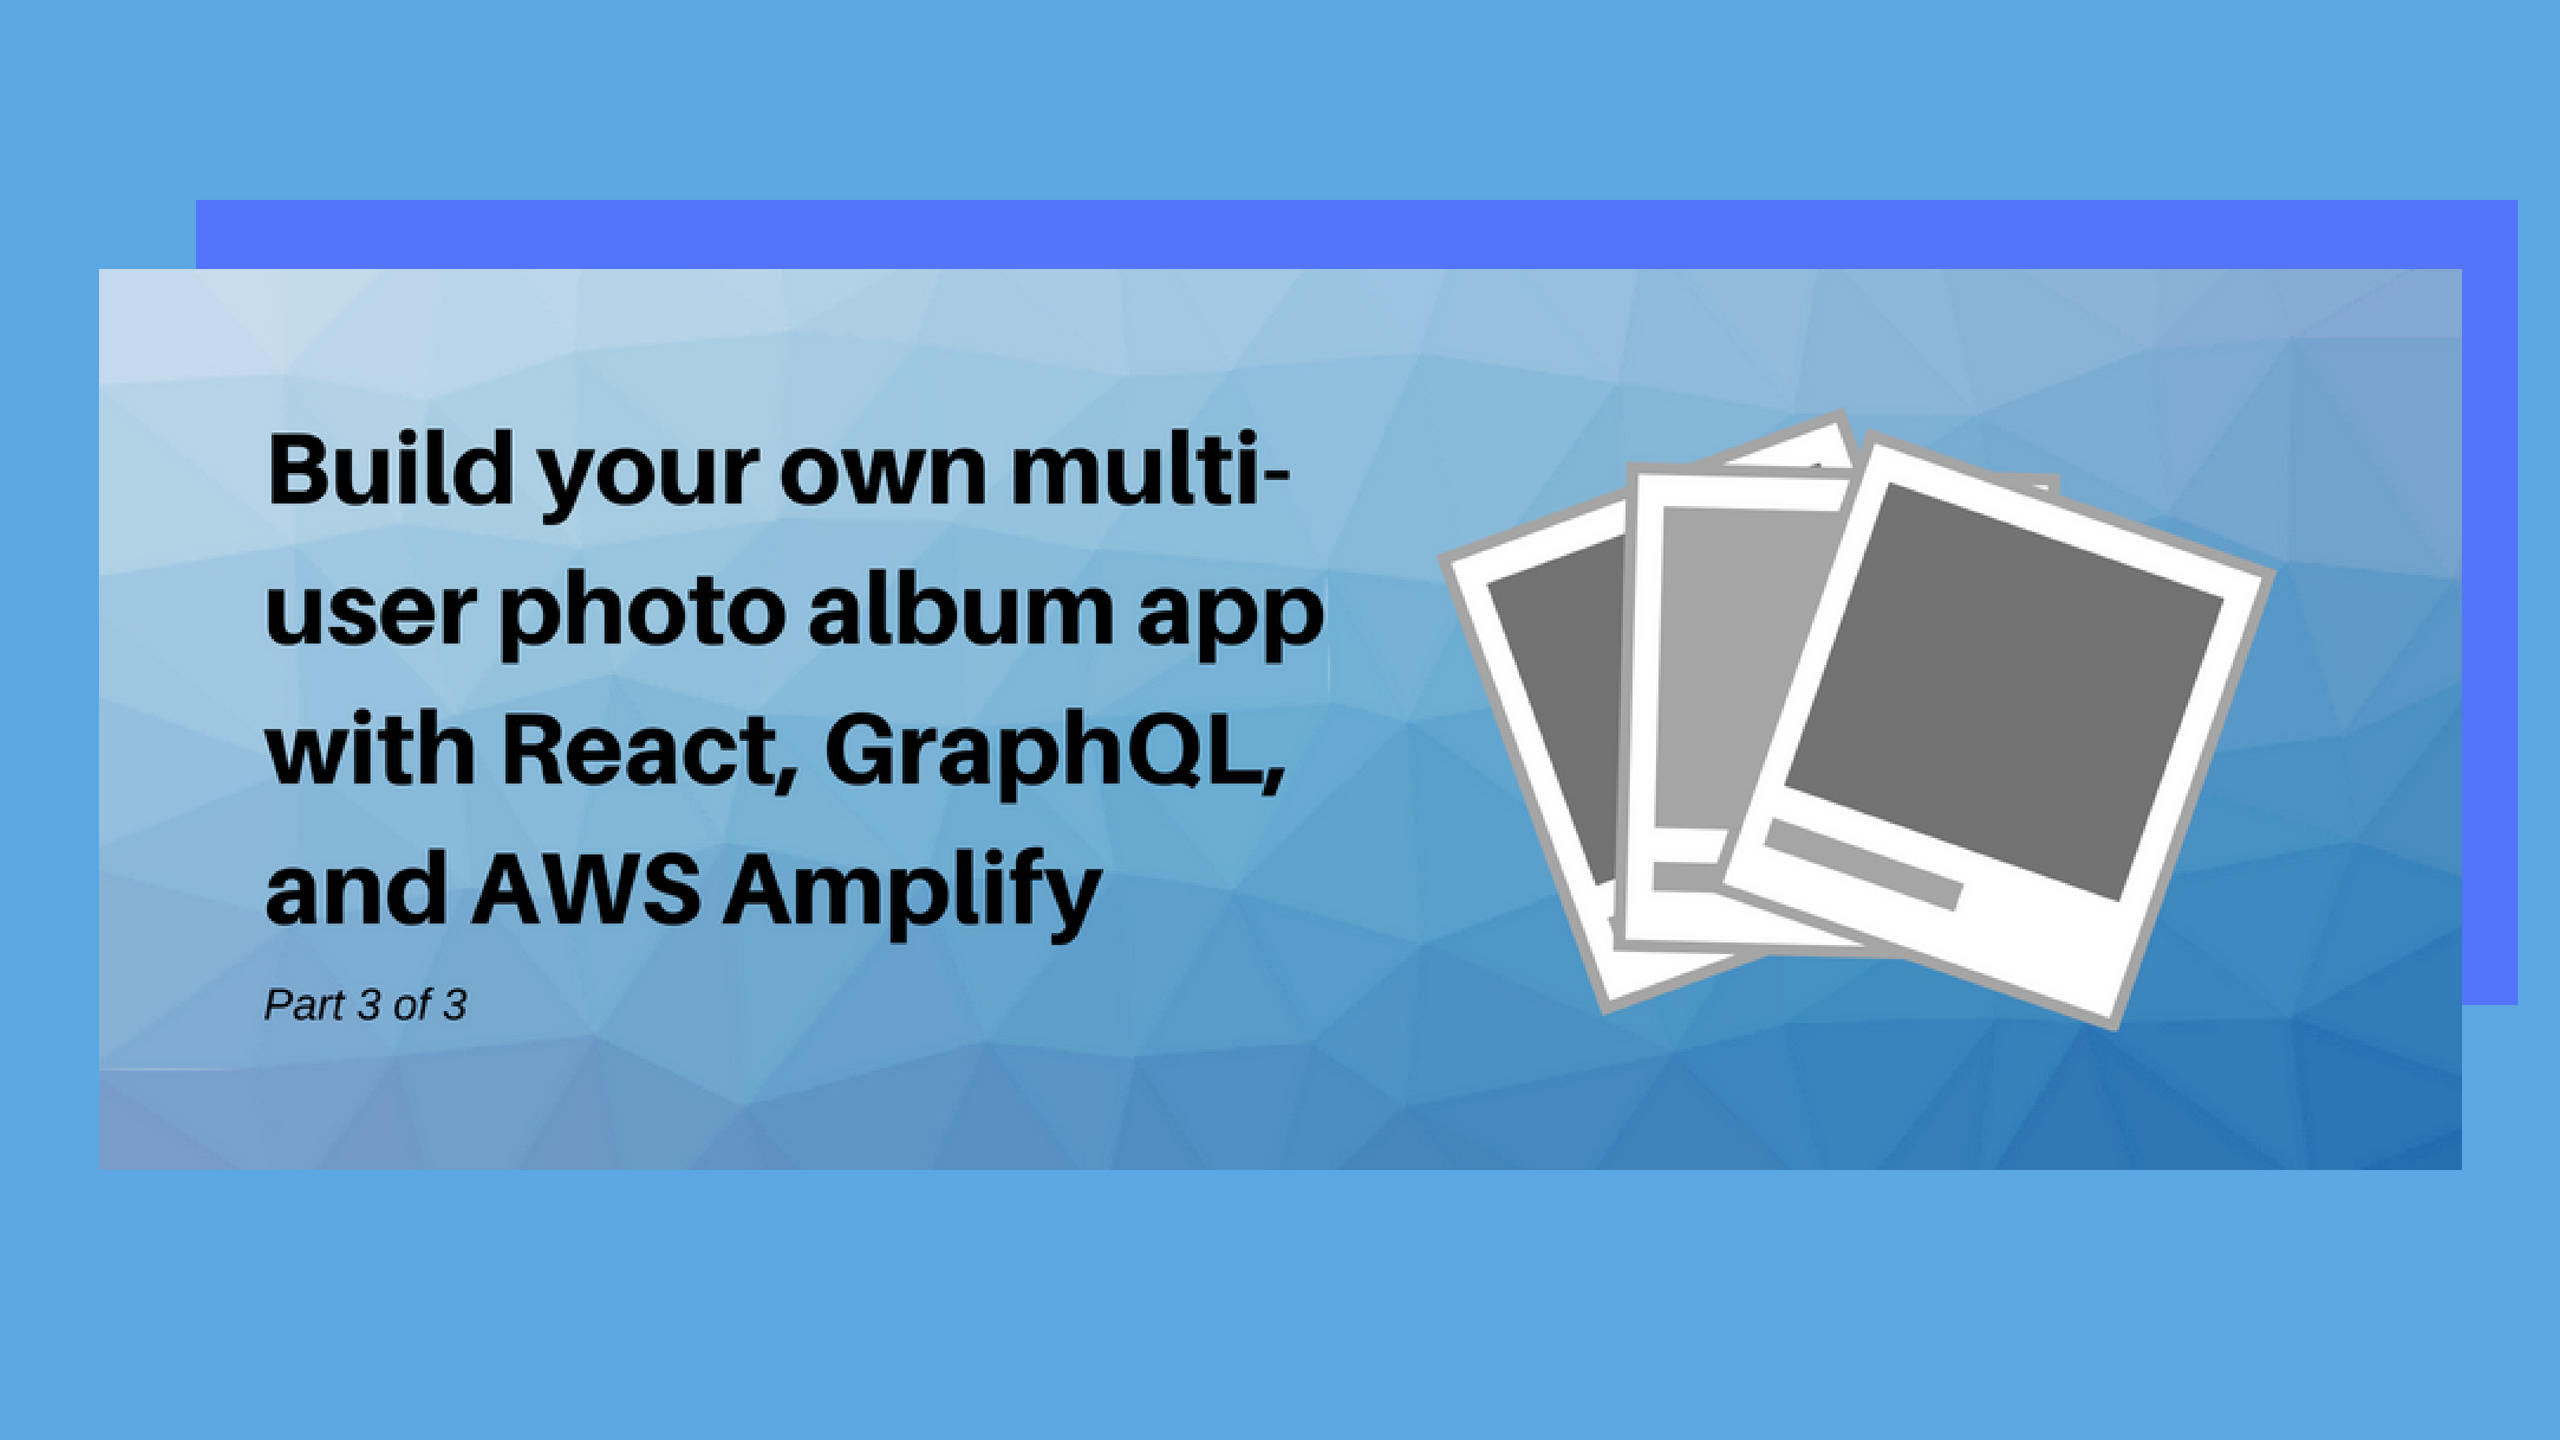 Build your own multi-user photo album app with React, GraphQL, and